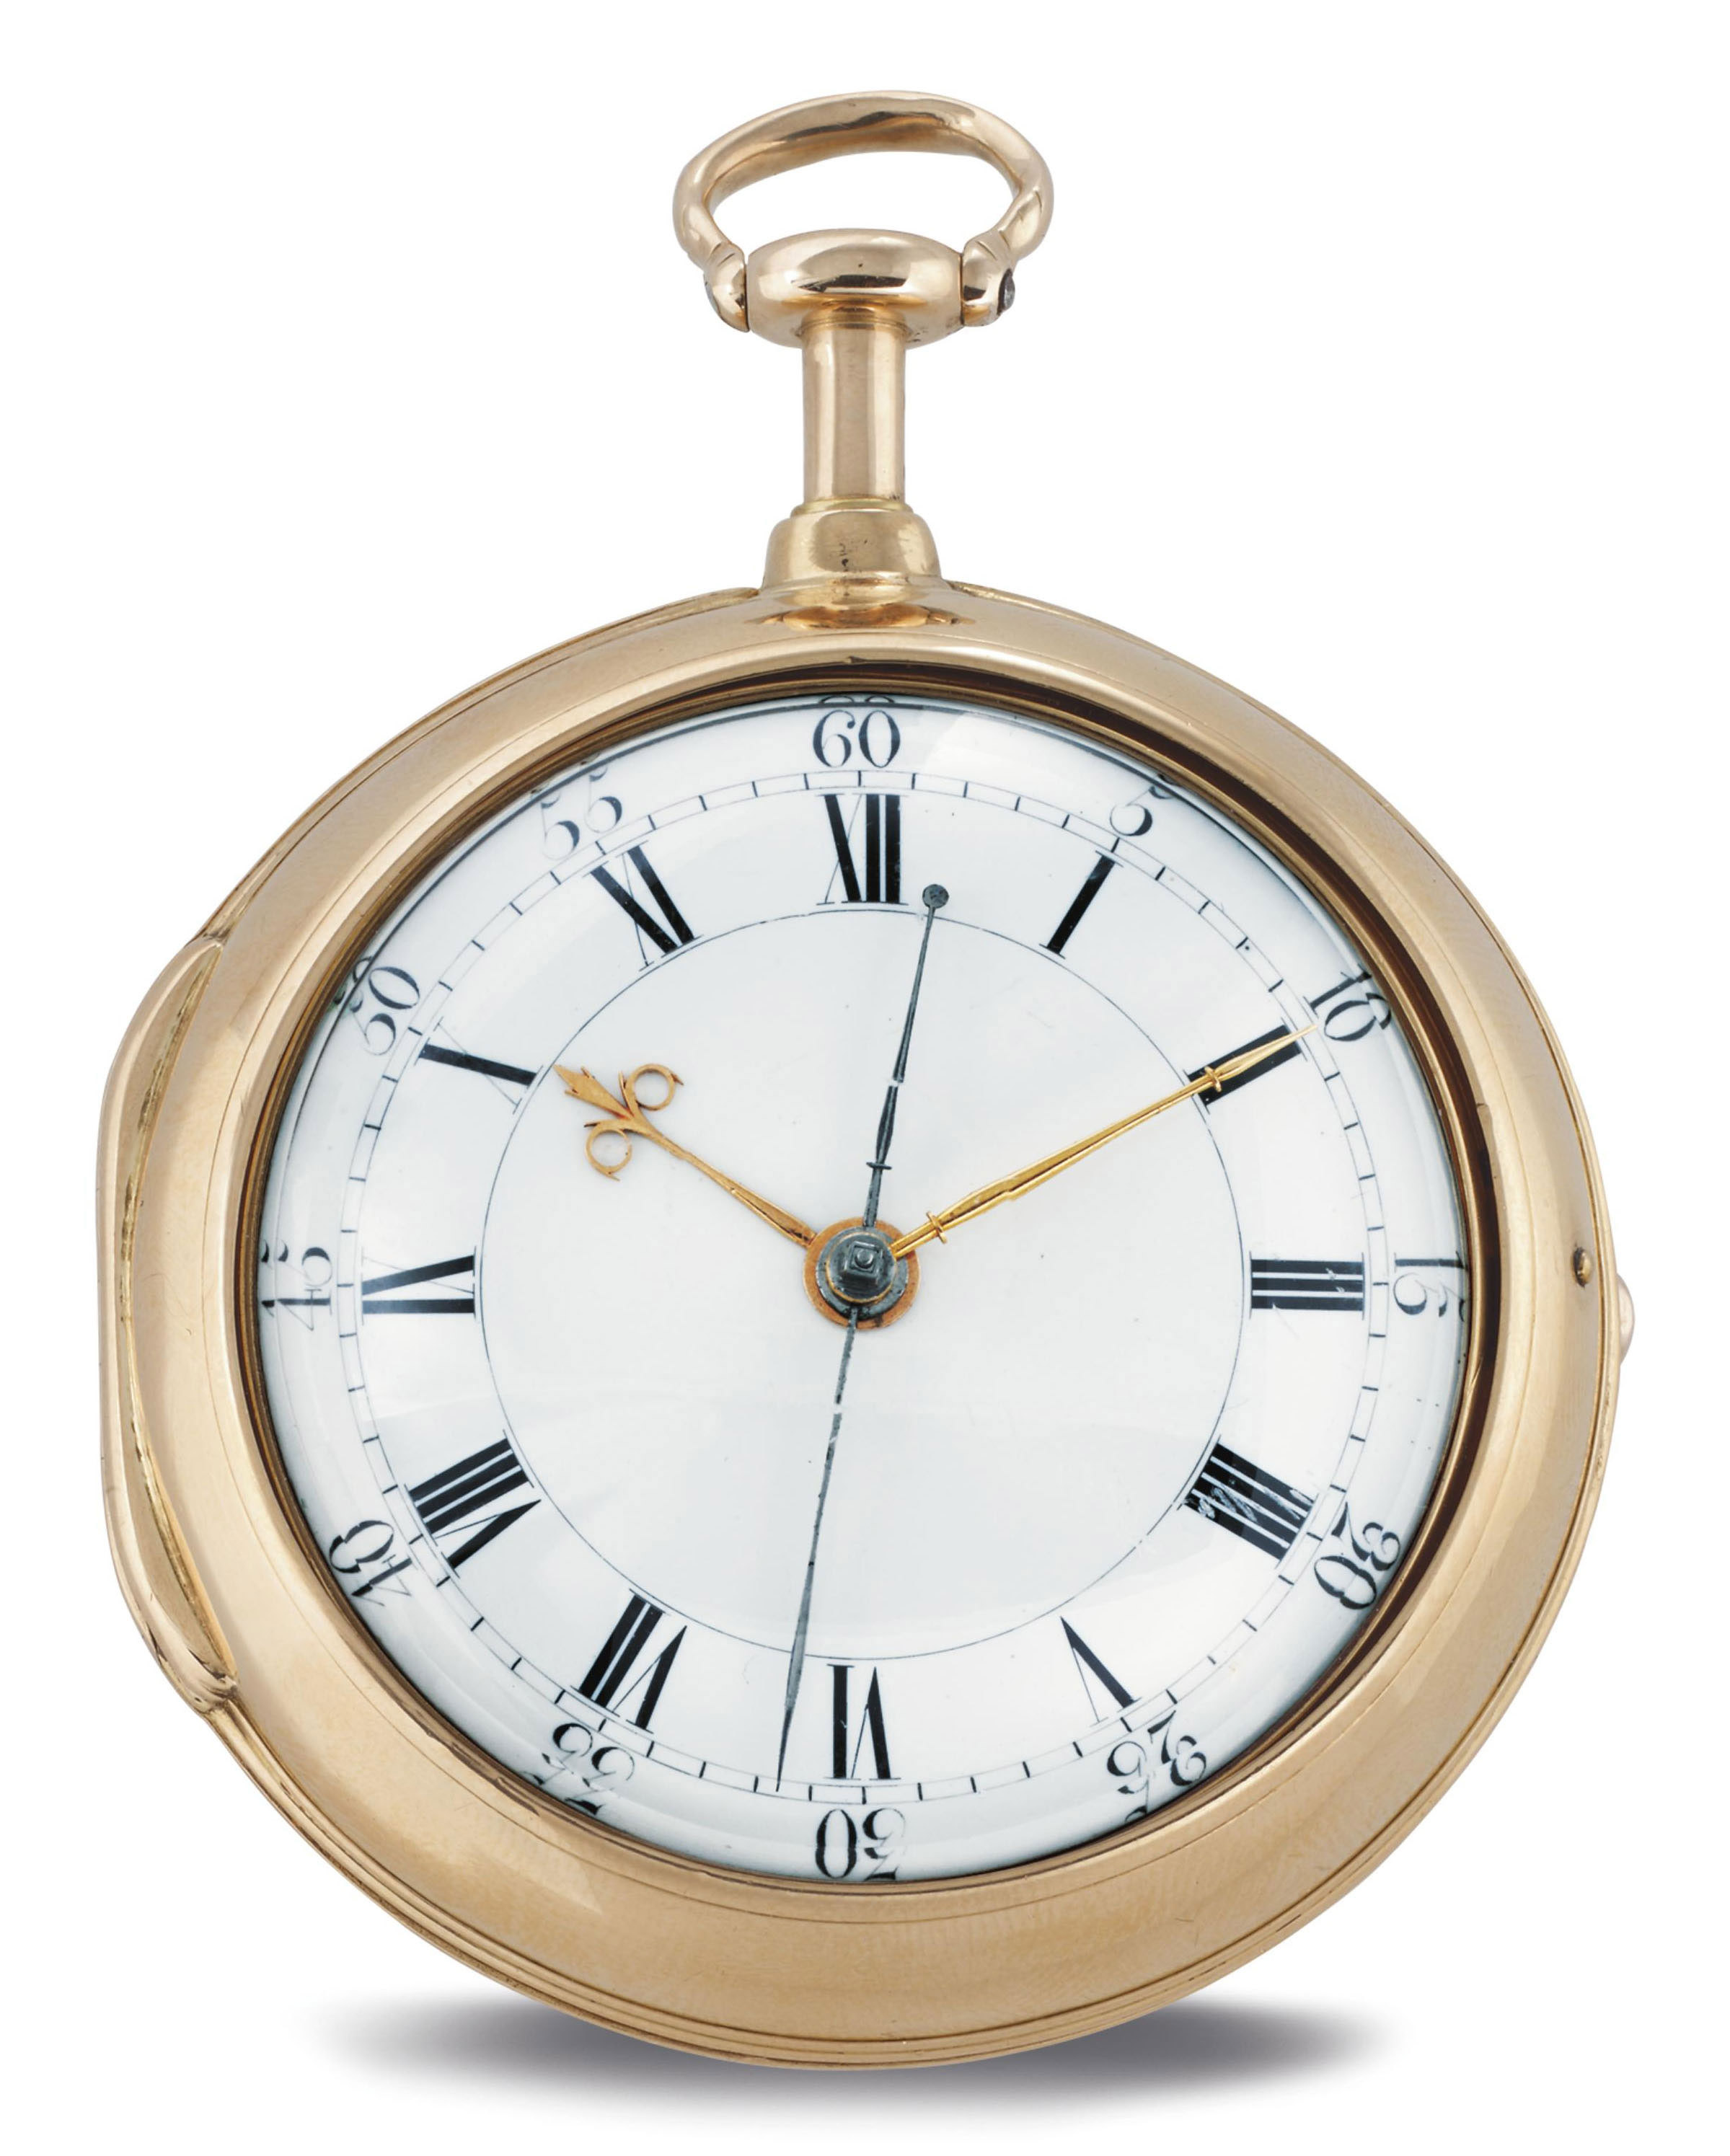 THOMAS MUDGE AND WILLIAM DUTTON. A GOLD PAIR CASE HALF-QUARTER REPEATING VERGE WATCH WITH CENTER SECONDS